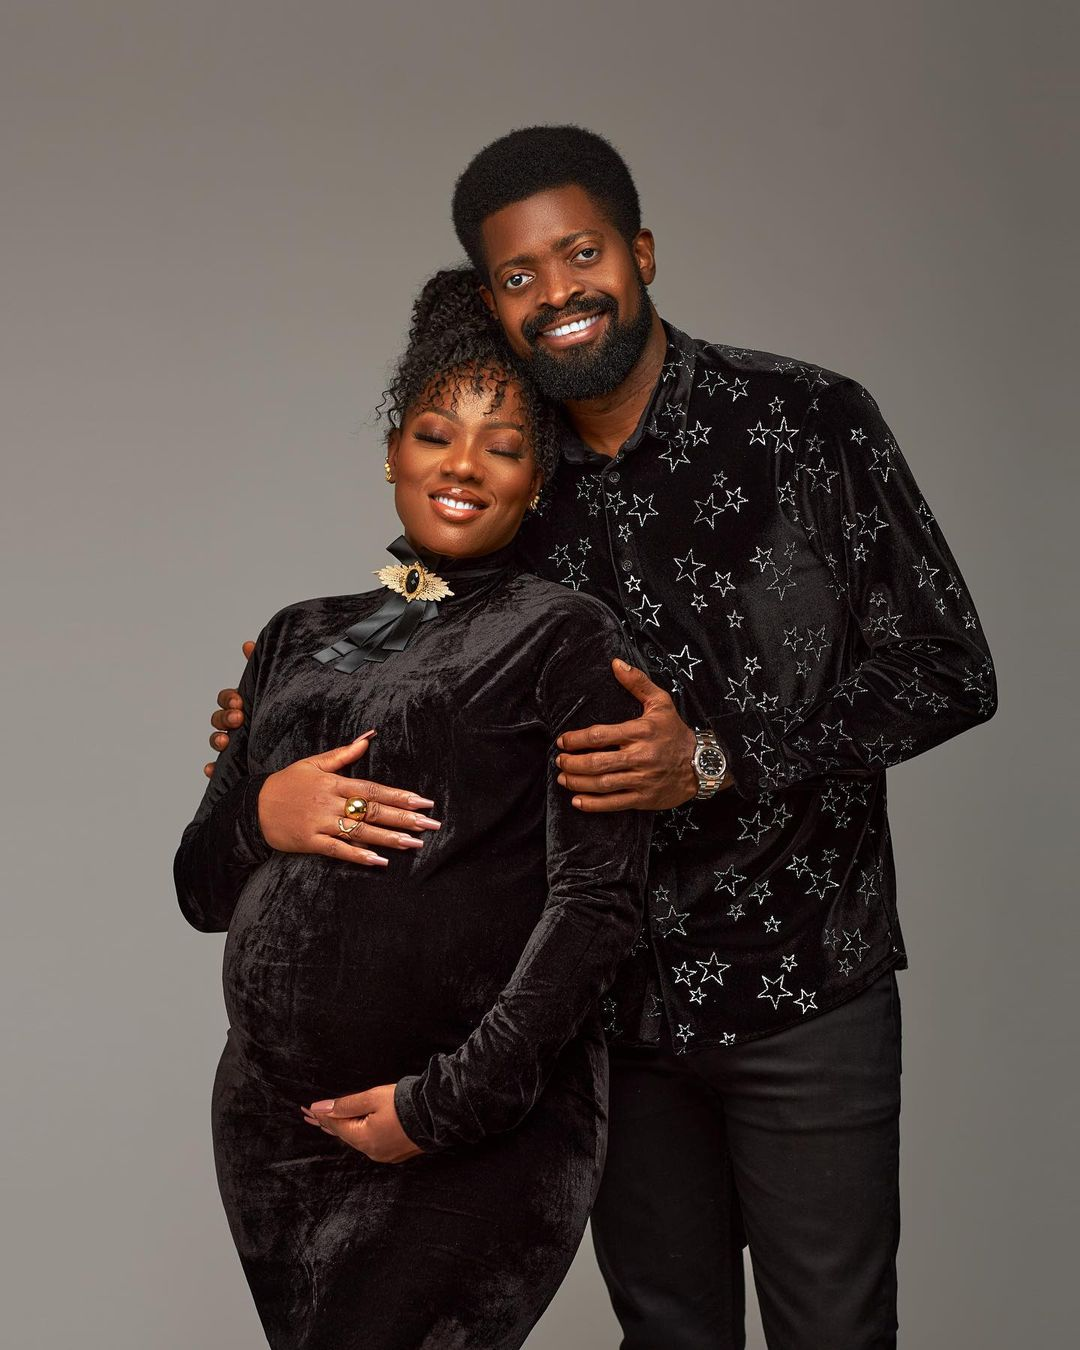 Basketmouth Welcomes 4th Child With Wife, Elsie